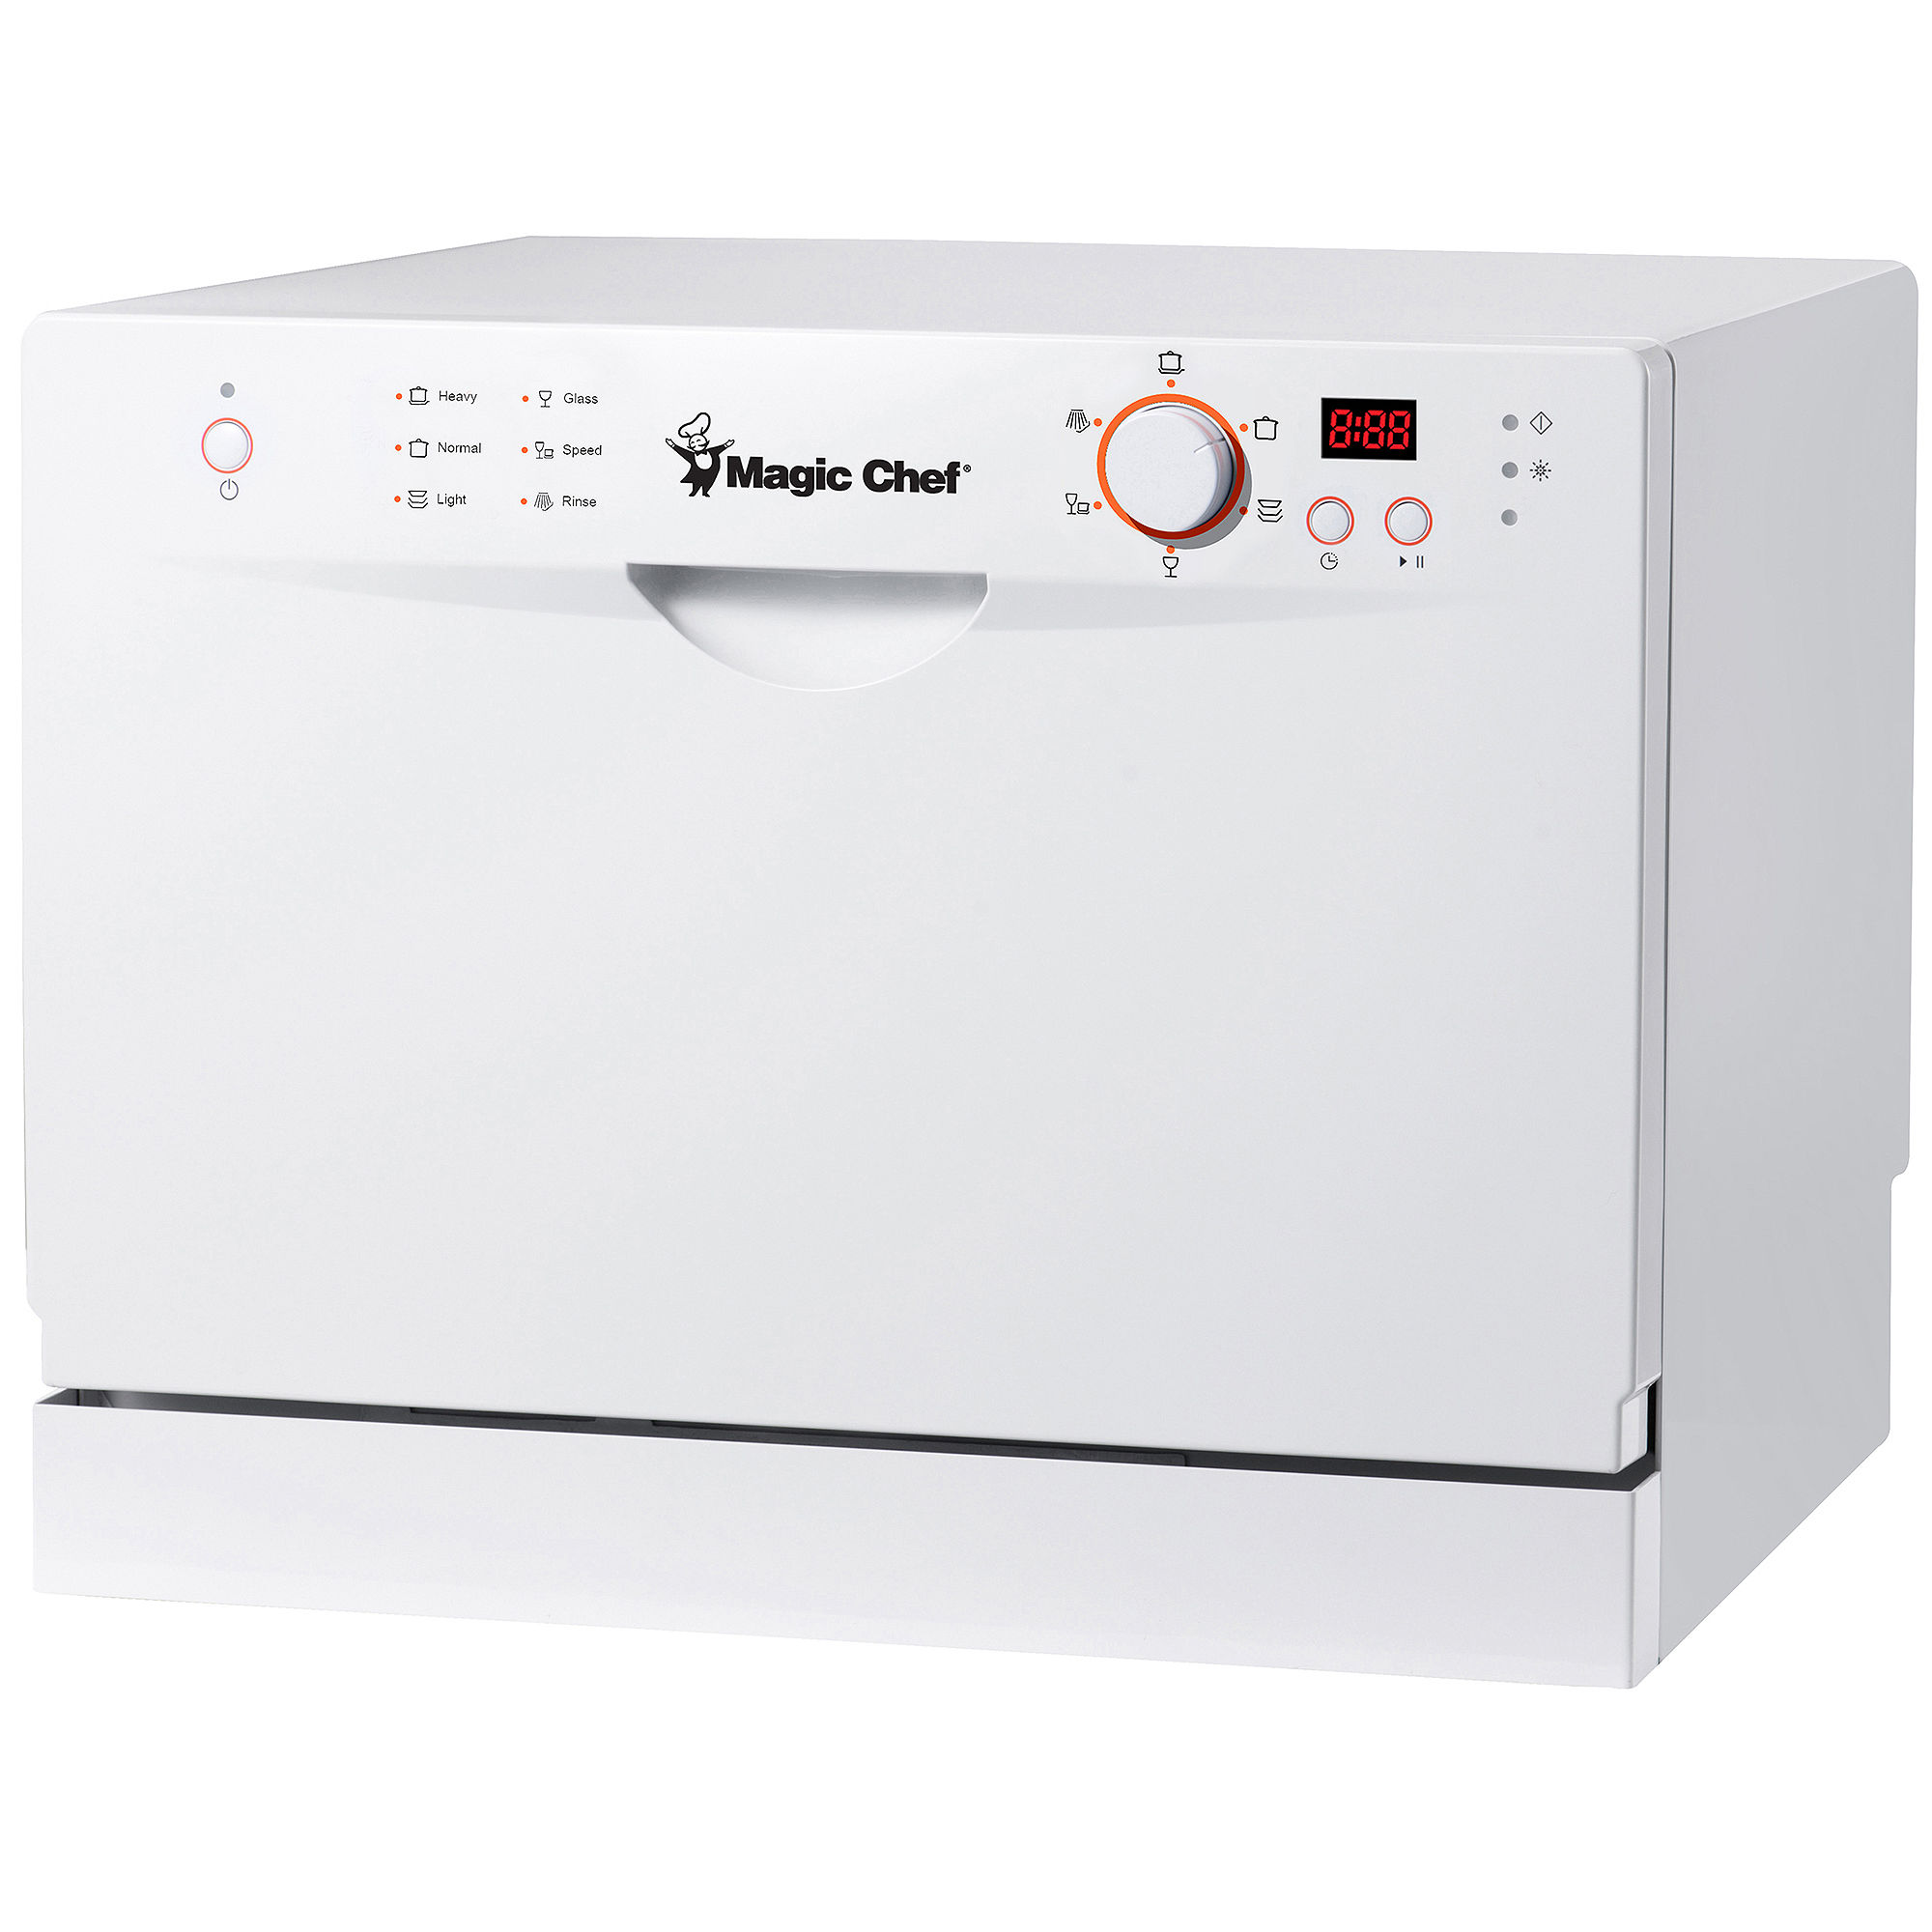 Do you need review of magic chef dishwasher wont drain? I highly ...